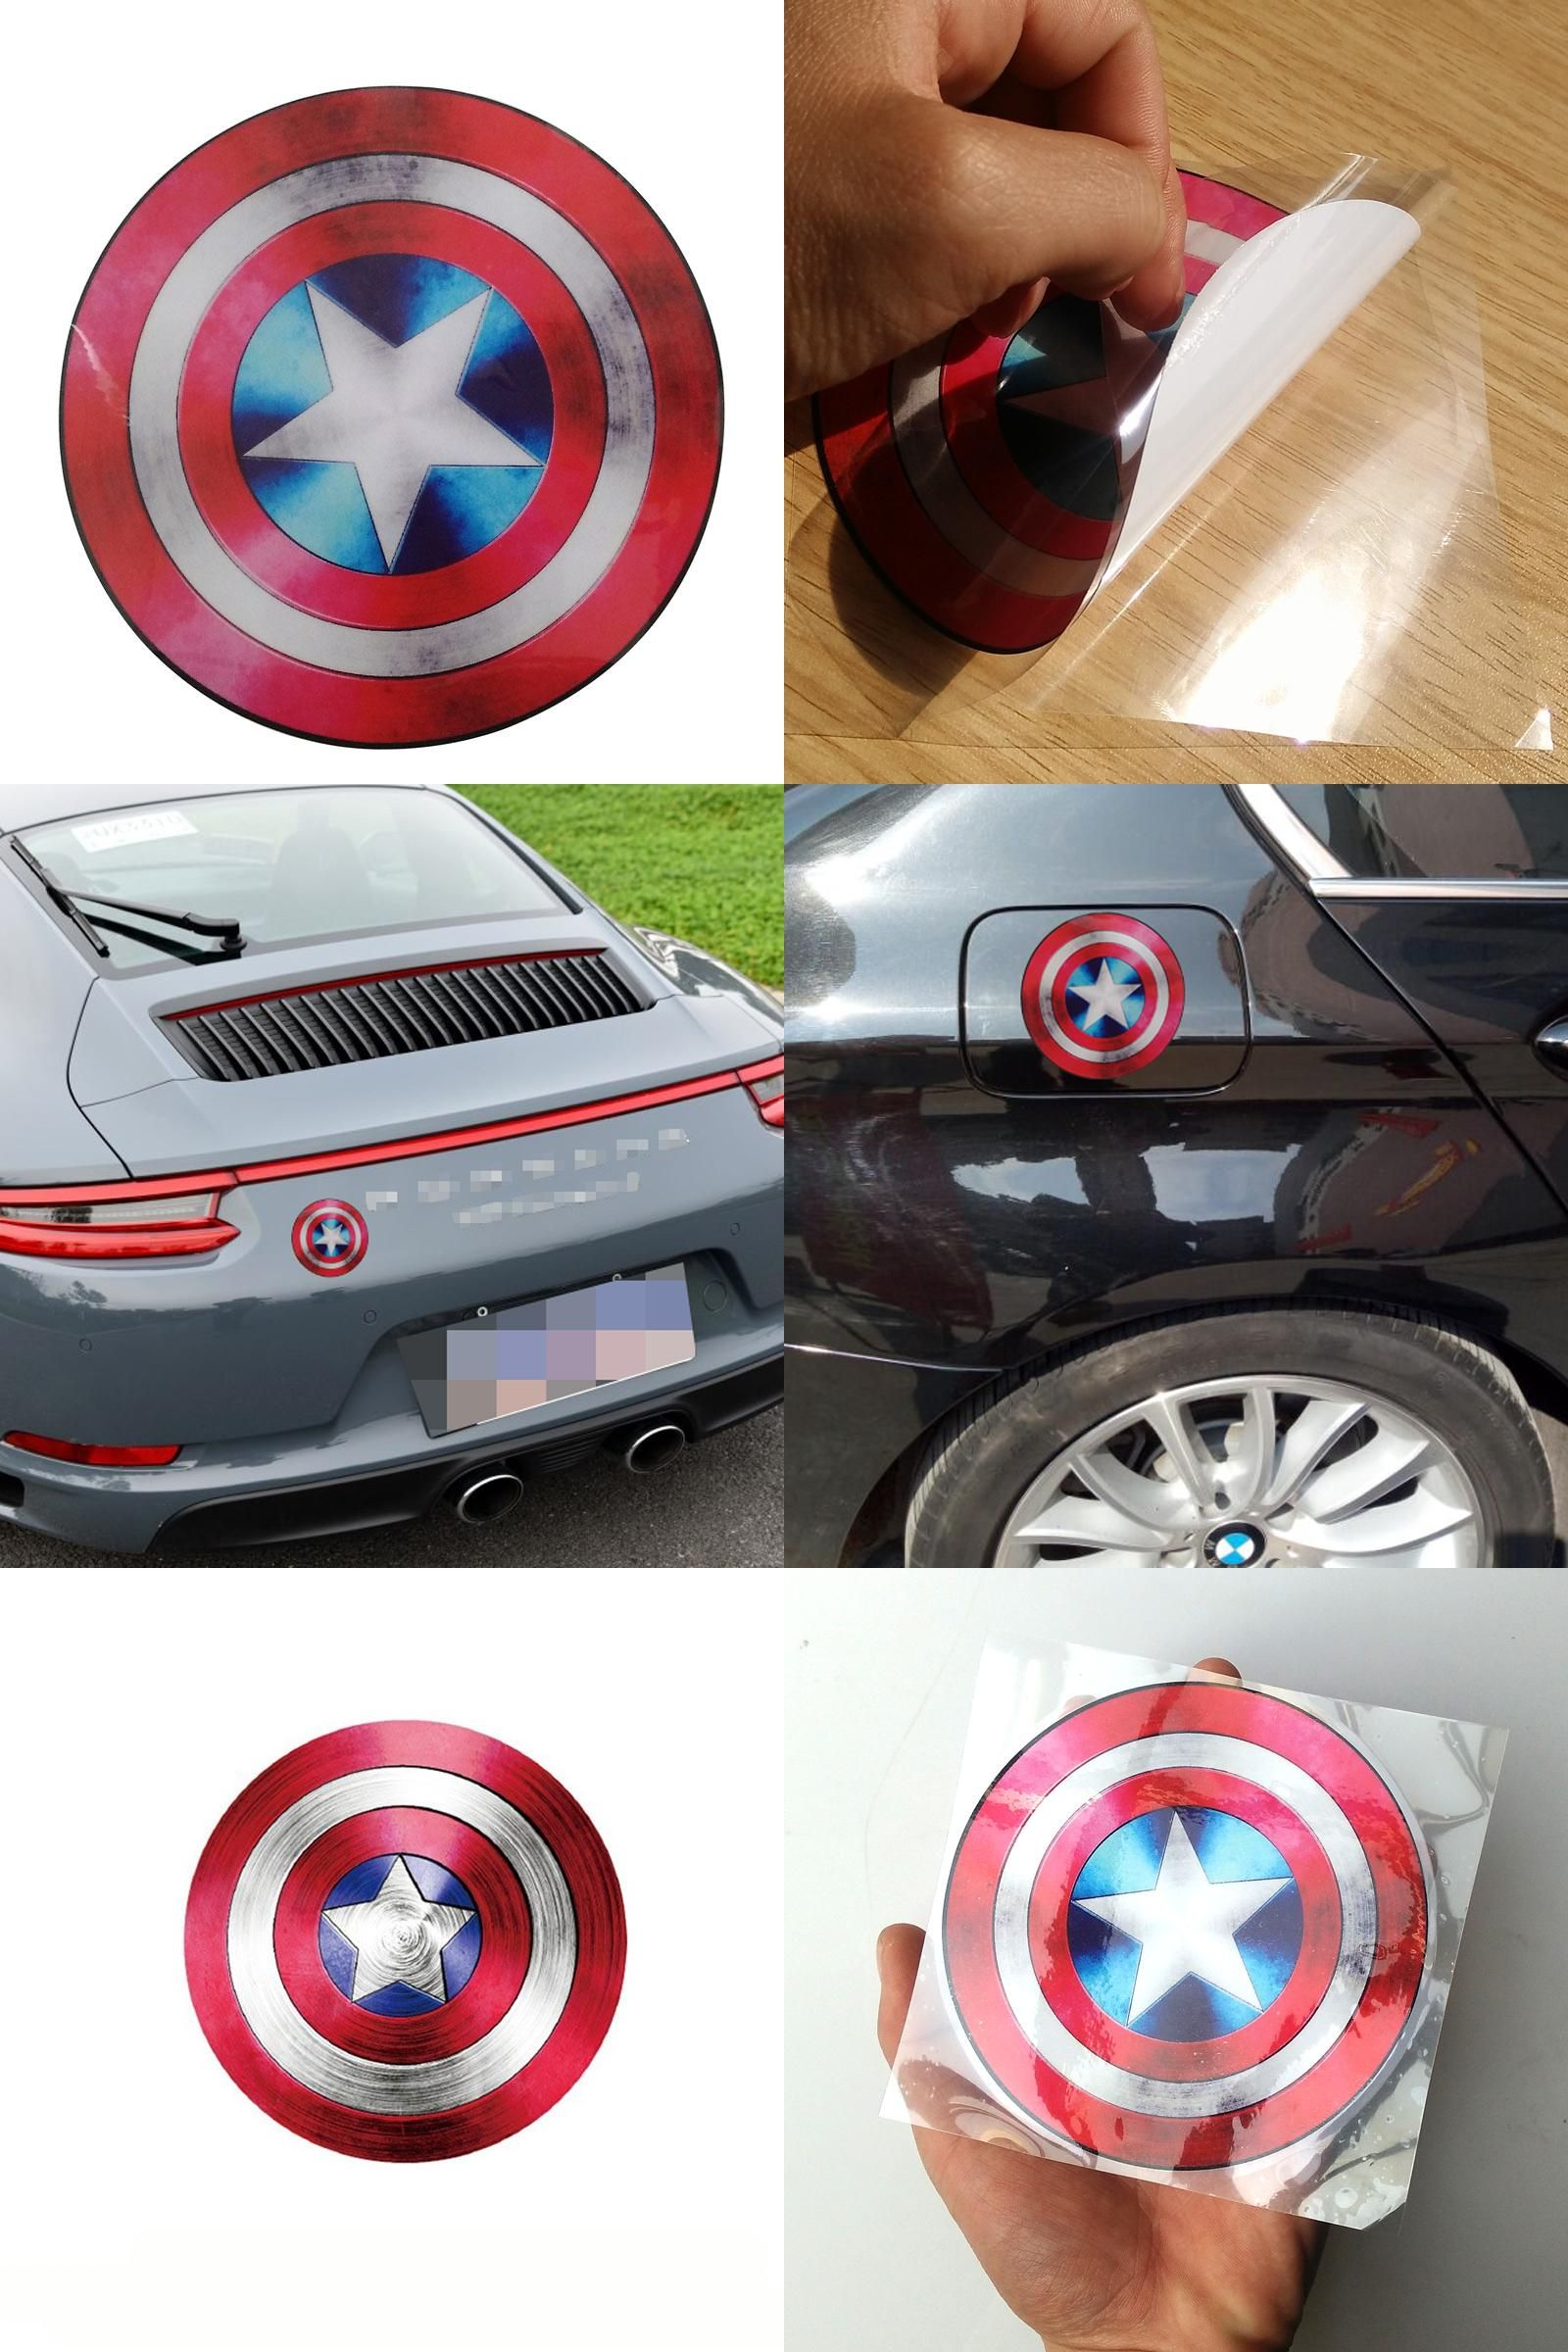 Visit To Buy Car Styling Captain America Shield Car Sticker For Motorcycle Toyota Kia Reflective Tap Sticker For Opel Vw F Captain America Ford Focus America [ 2400 x 1600 Pixel ]